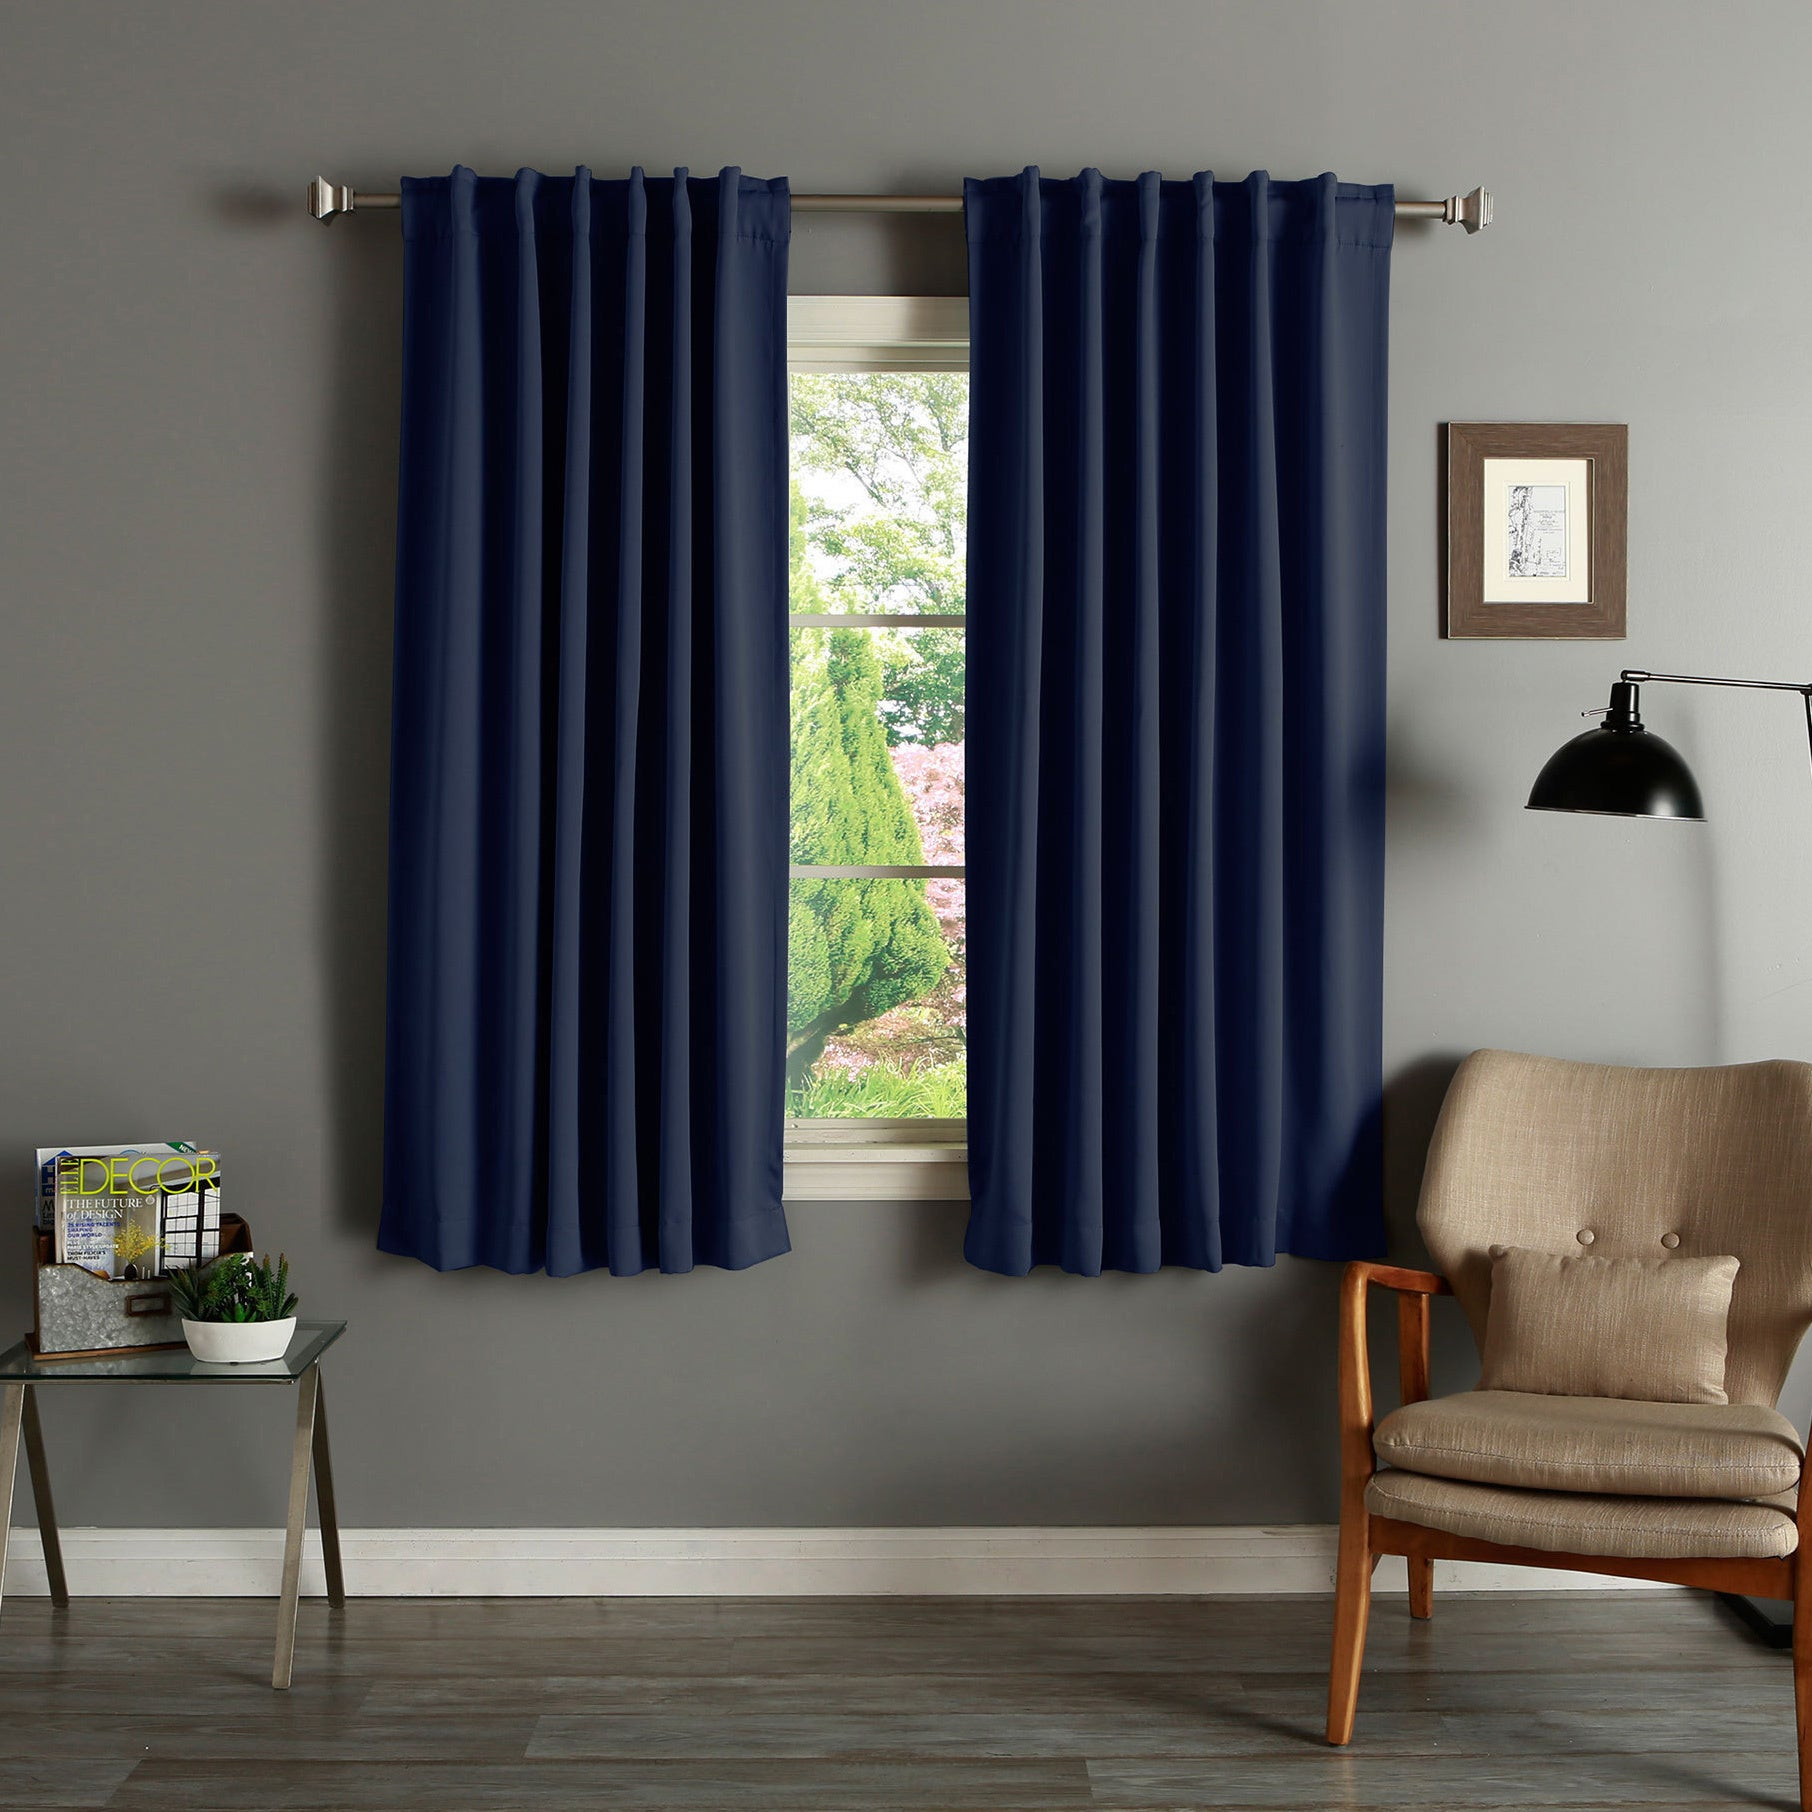 att of bedroom for curtains blackout balichun thermal by exceptional inch x panels photo grommets black curtain drapes insulated